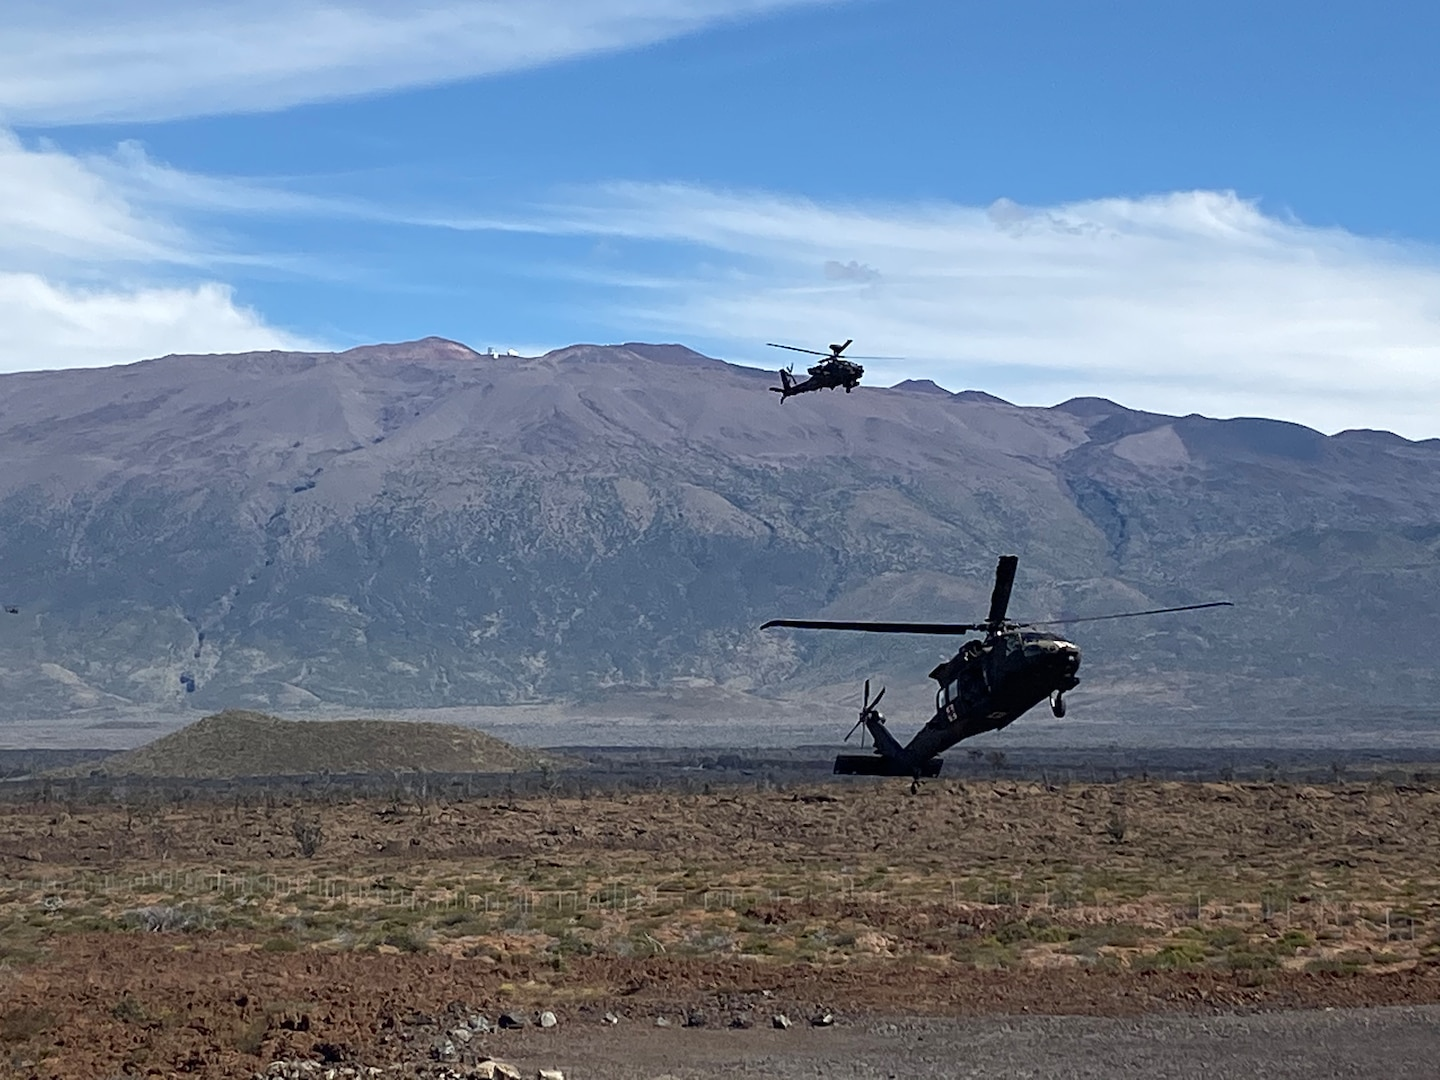 A UH-60 Black Hawk flares before landing with armed escort from an AH-64 Apache during infiltration operations for a Fire Support Coordination Exercise on Pohakuloa Training Area, located on the big island of Hawaii, November 12 through 21, 2019. During the exercise, members of the 25th Air Support Operations Squadron and U.S. Army Pacific 2nd Brigade, 25th Infantry Division, 2nd Brigade Combat Team, integrated with B-52 Stratofortress bombers for live-fire training missions in support of Indo-Pacific Command's Continuous Bomber Presence operations. (Courtesy photo)